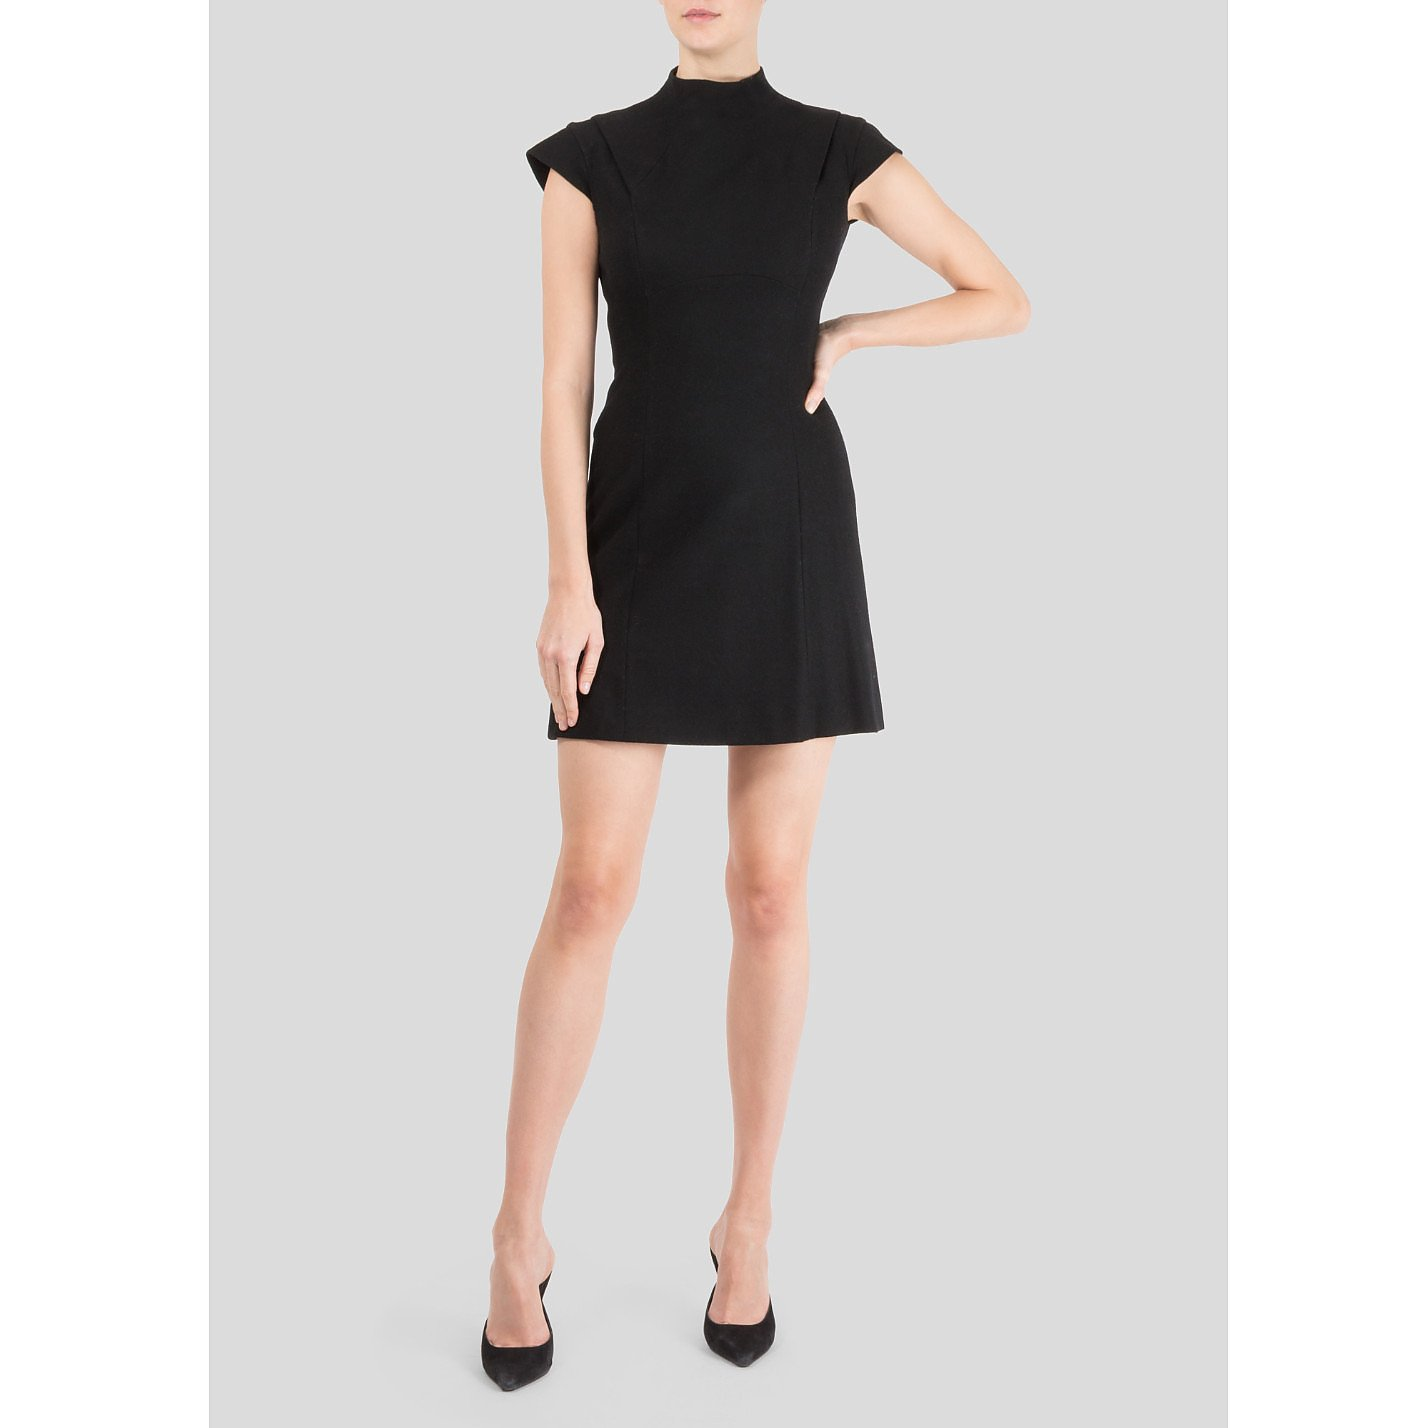 Victoria Beckham High Neck Wool Mini Dress